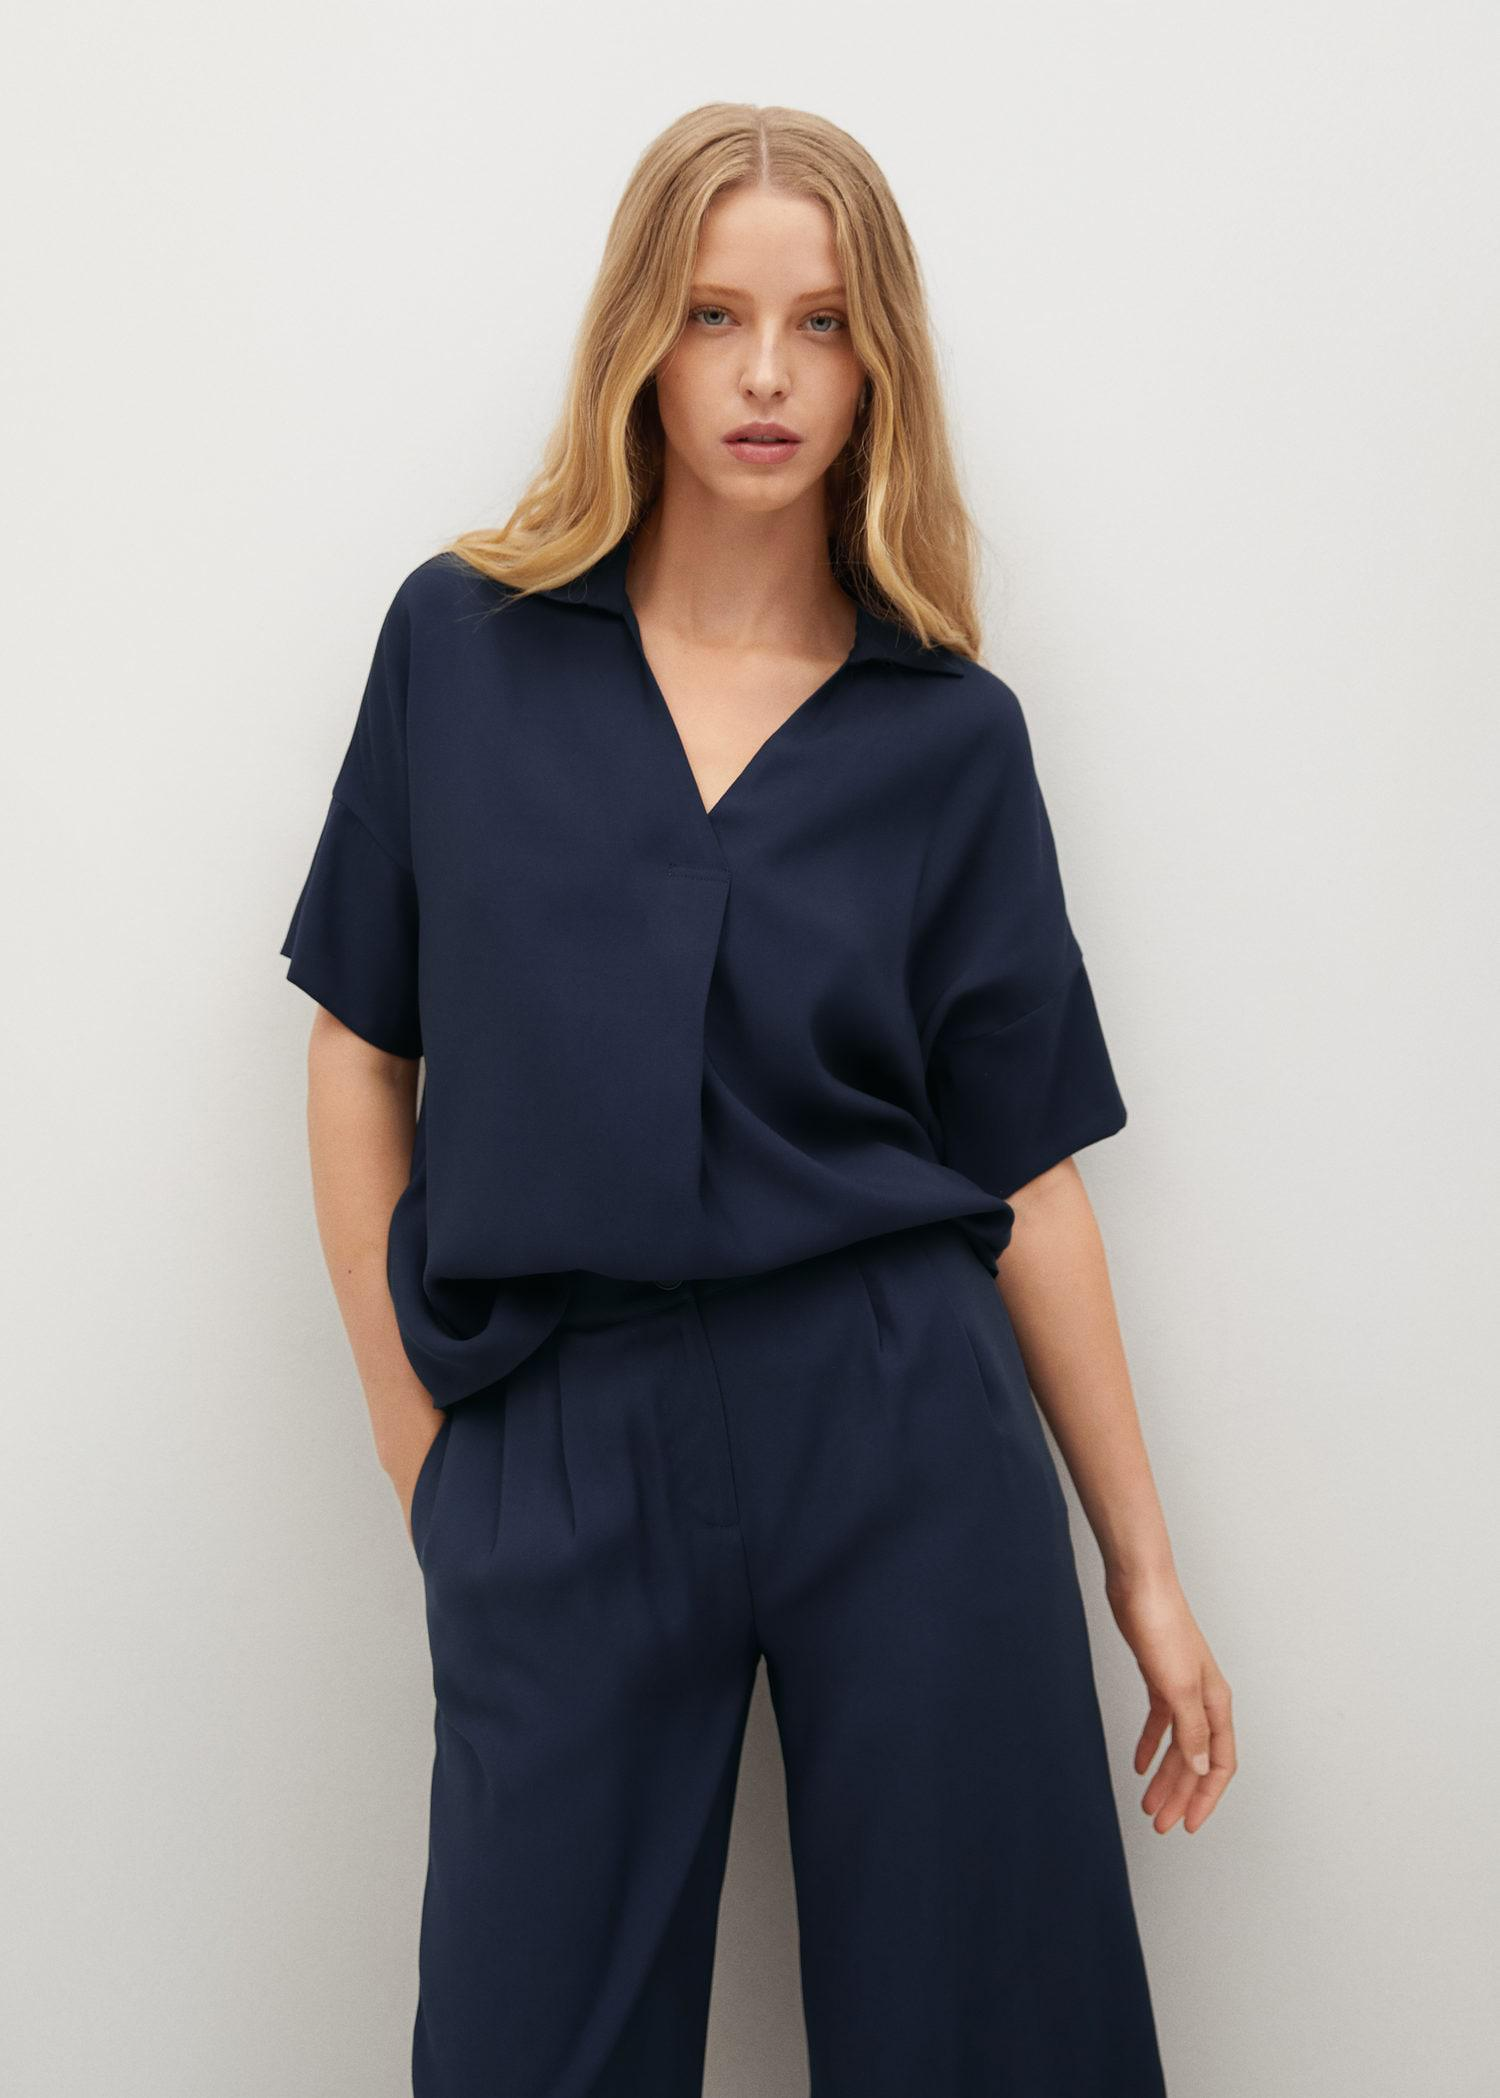 Oversized flowing blouse